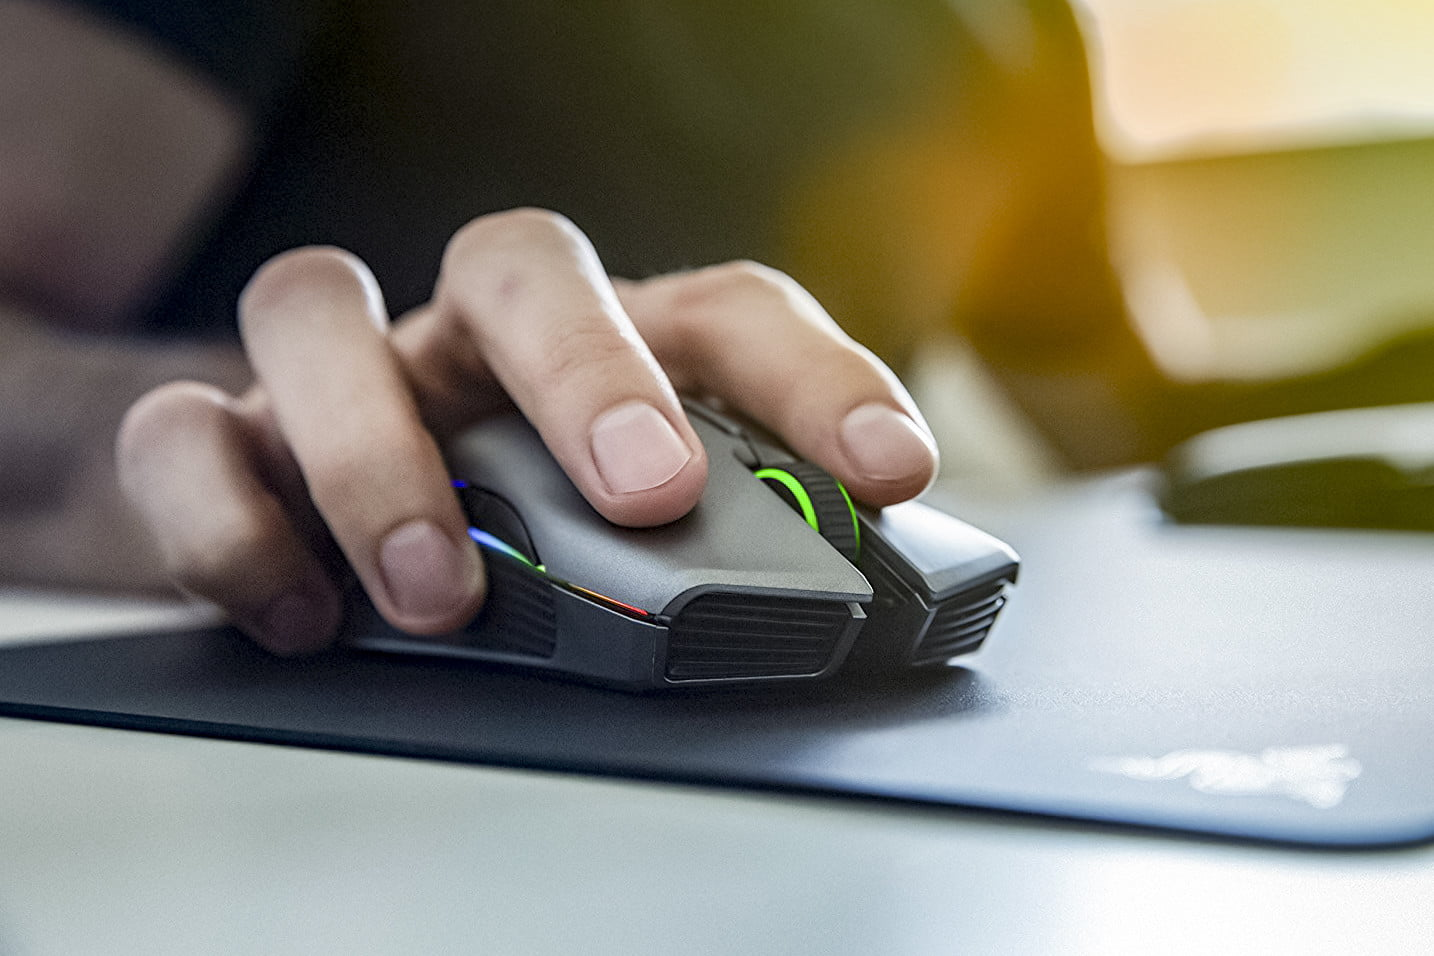 Top 10 Best Wireless Gaming Mice In 2019